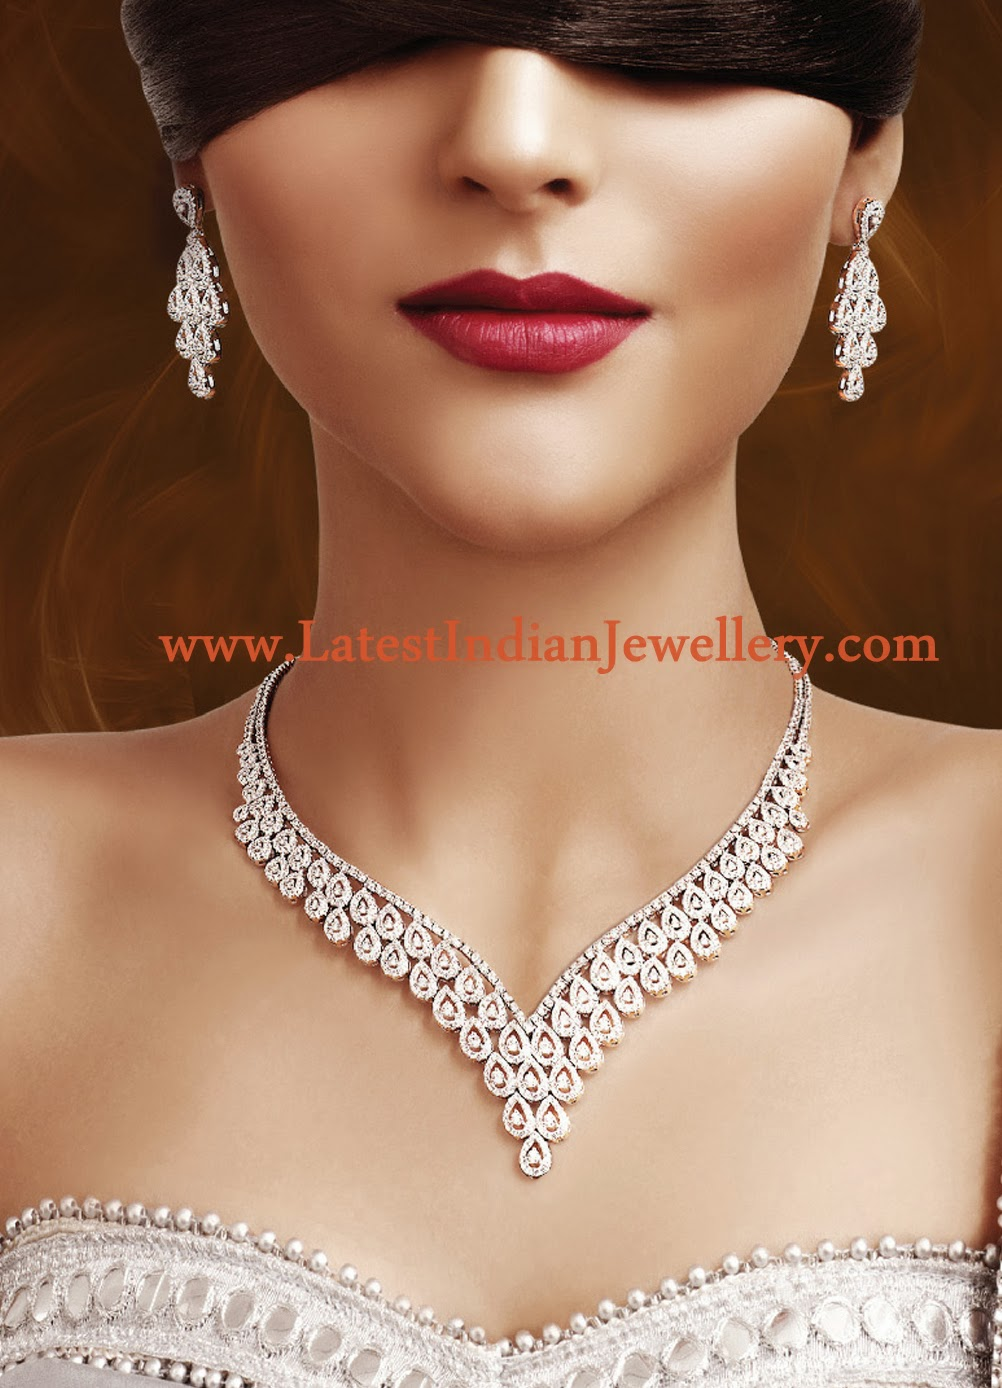 Classy Diamond Necklace Set